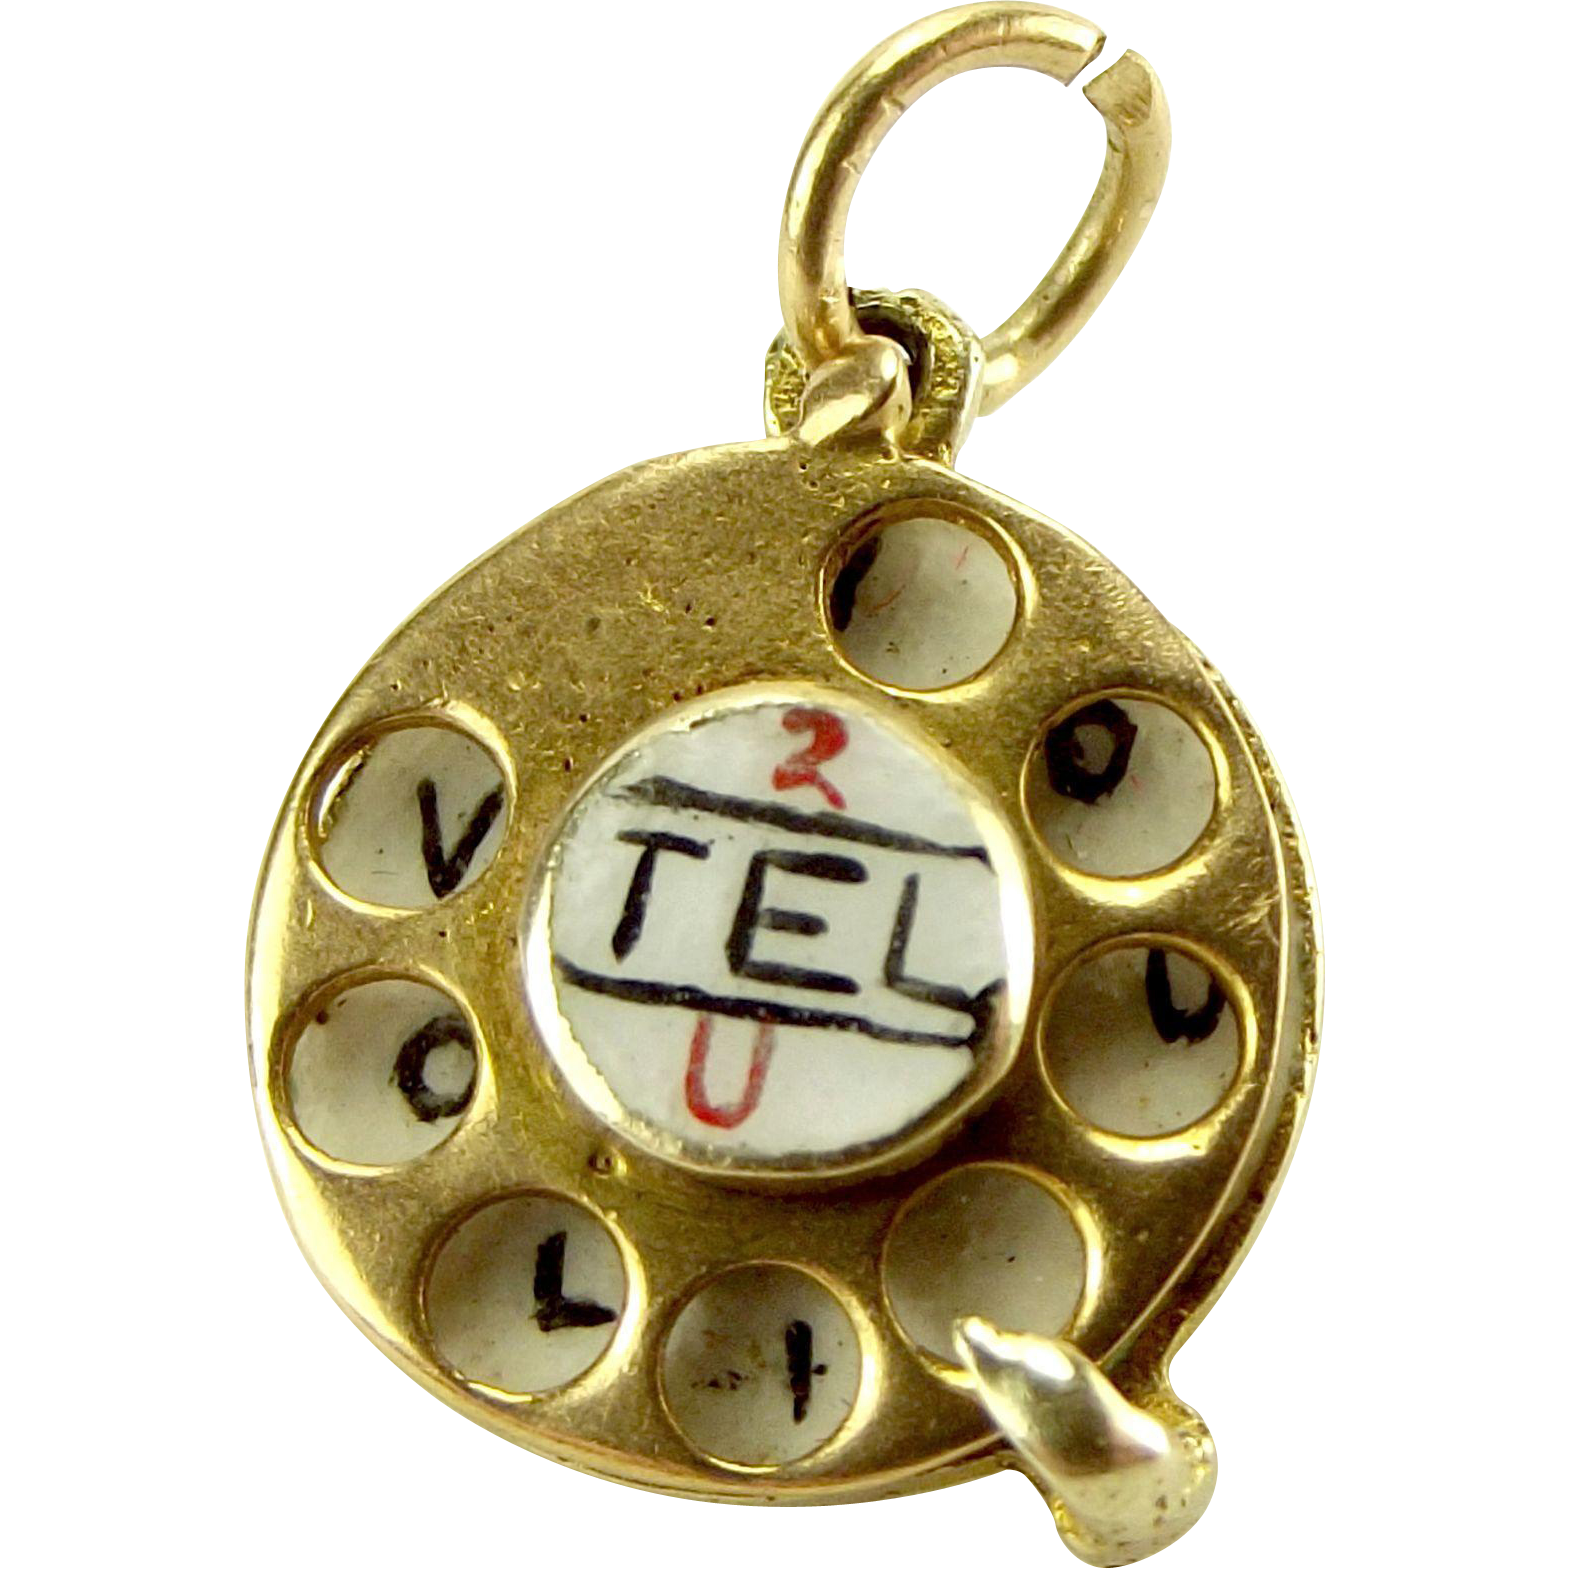 Vintage 9ct Gold & Enamel TELEPHONE DIAL Charm Moves 2 Tel U I Love You